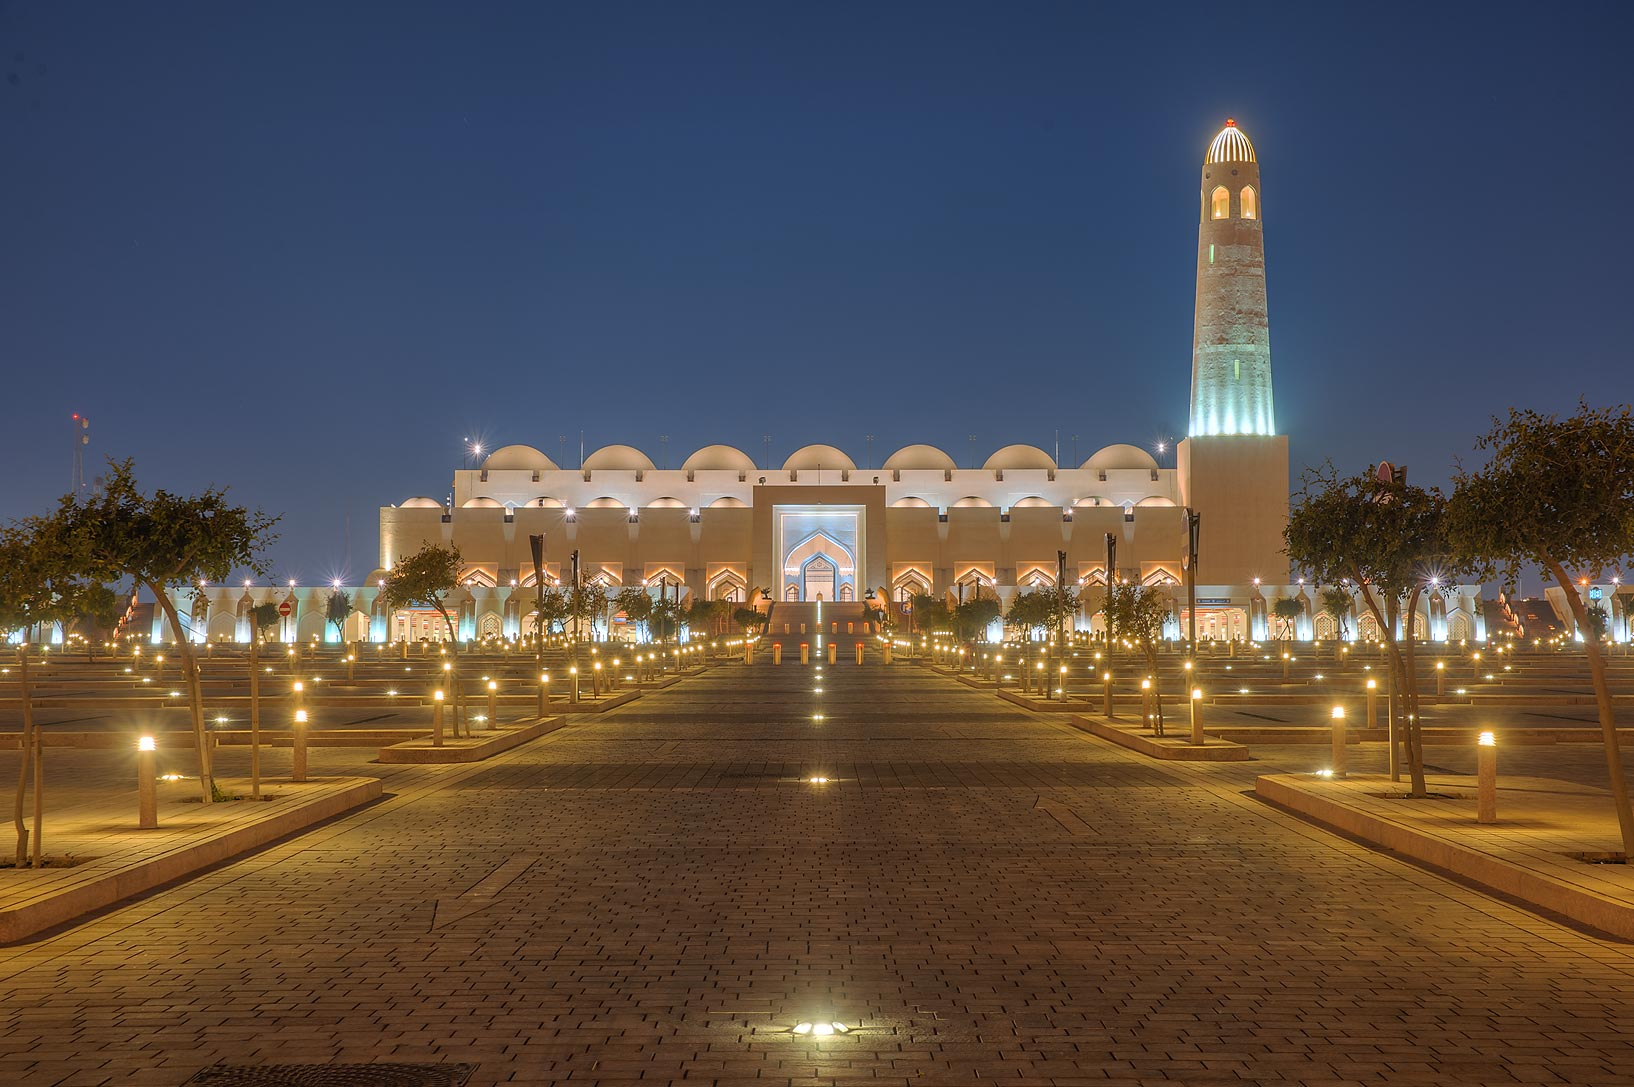 Entrance street of State Mosque (Sheikh Muhammad Ibn Abdul Wahhab Mosque). Doha, Qatar